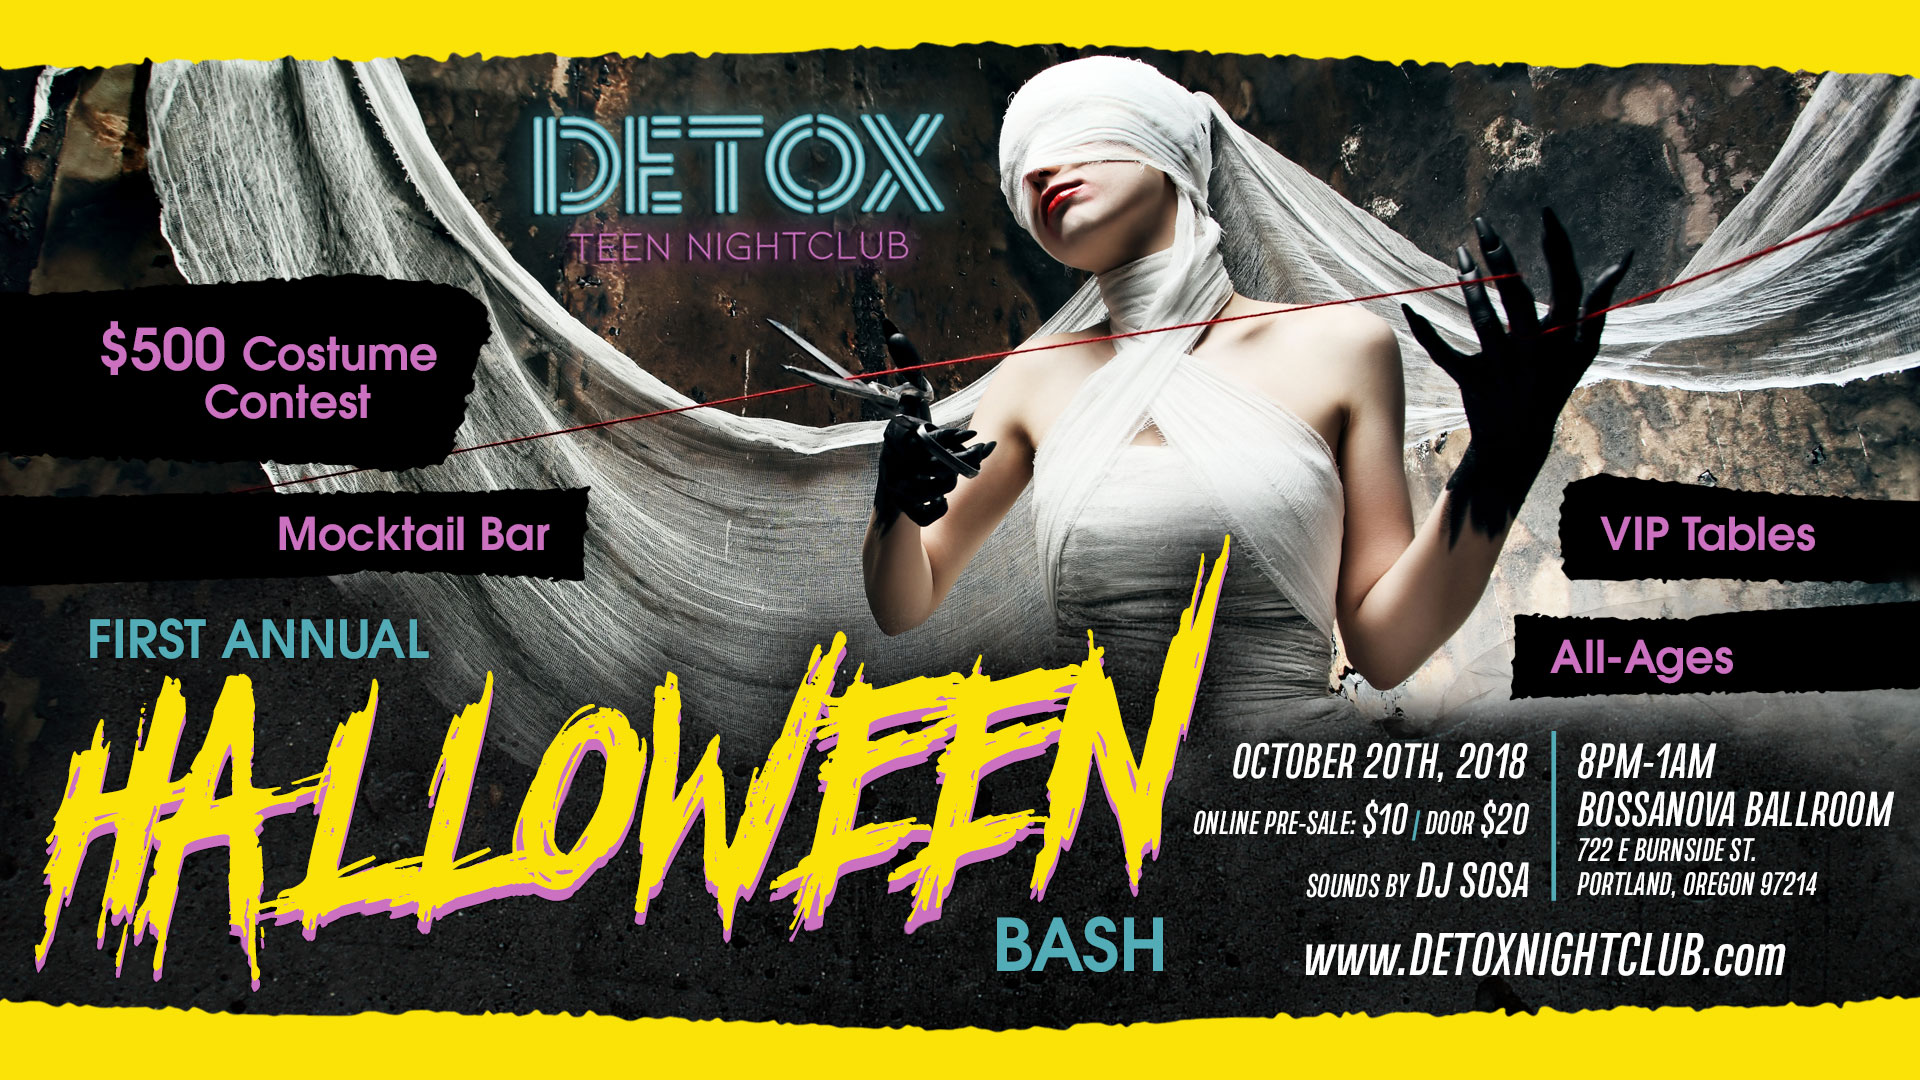 halloween party costume contest rules & restrictions | detox teen